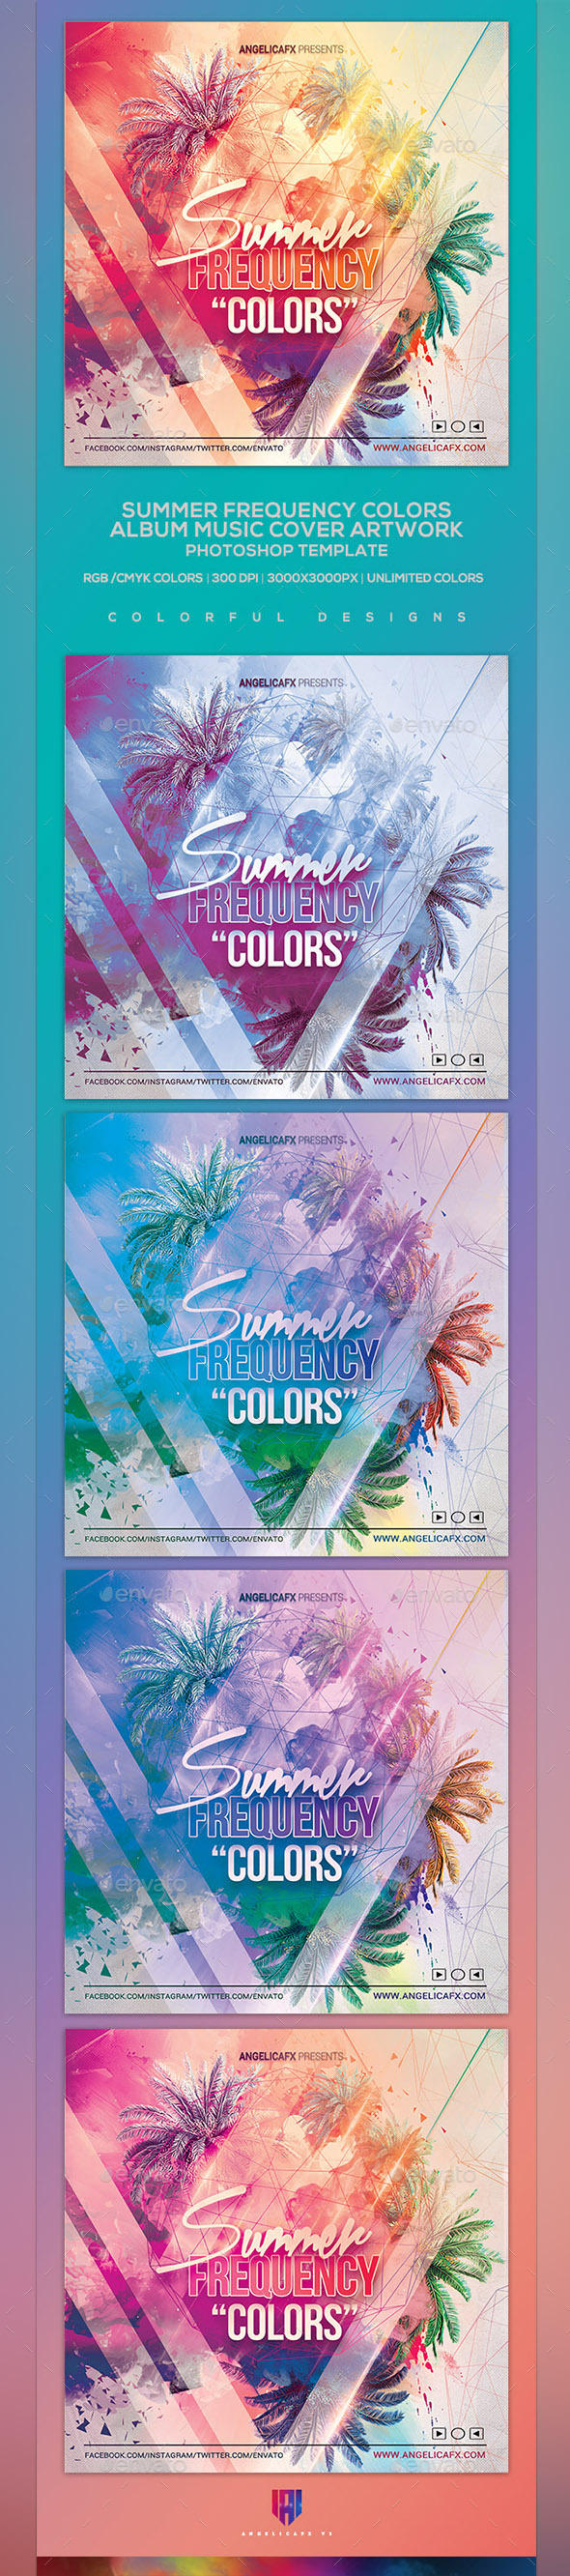 Frequency Colors - Music Album Cover Photoshop Artwork Template